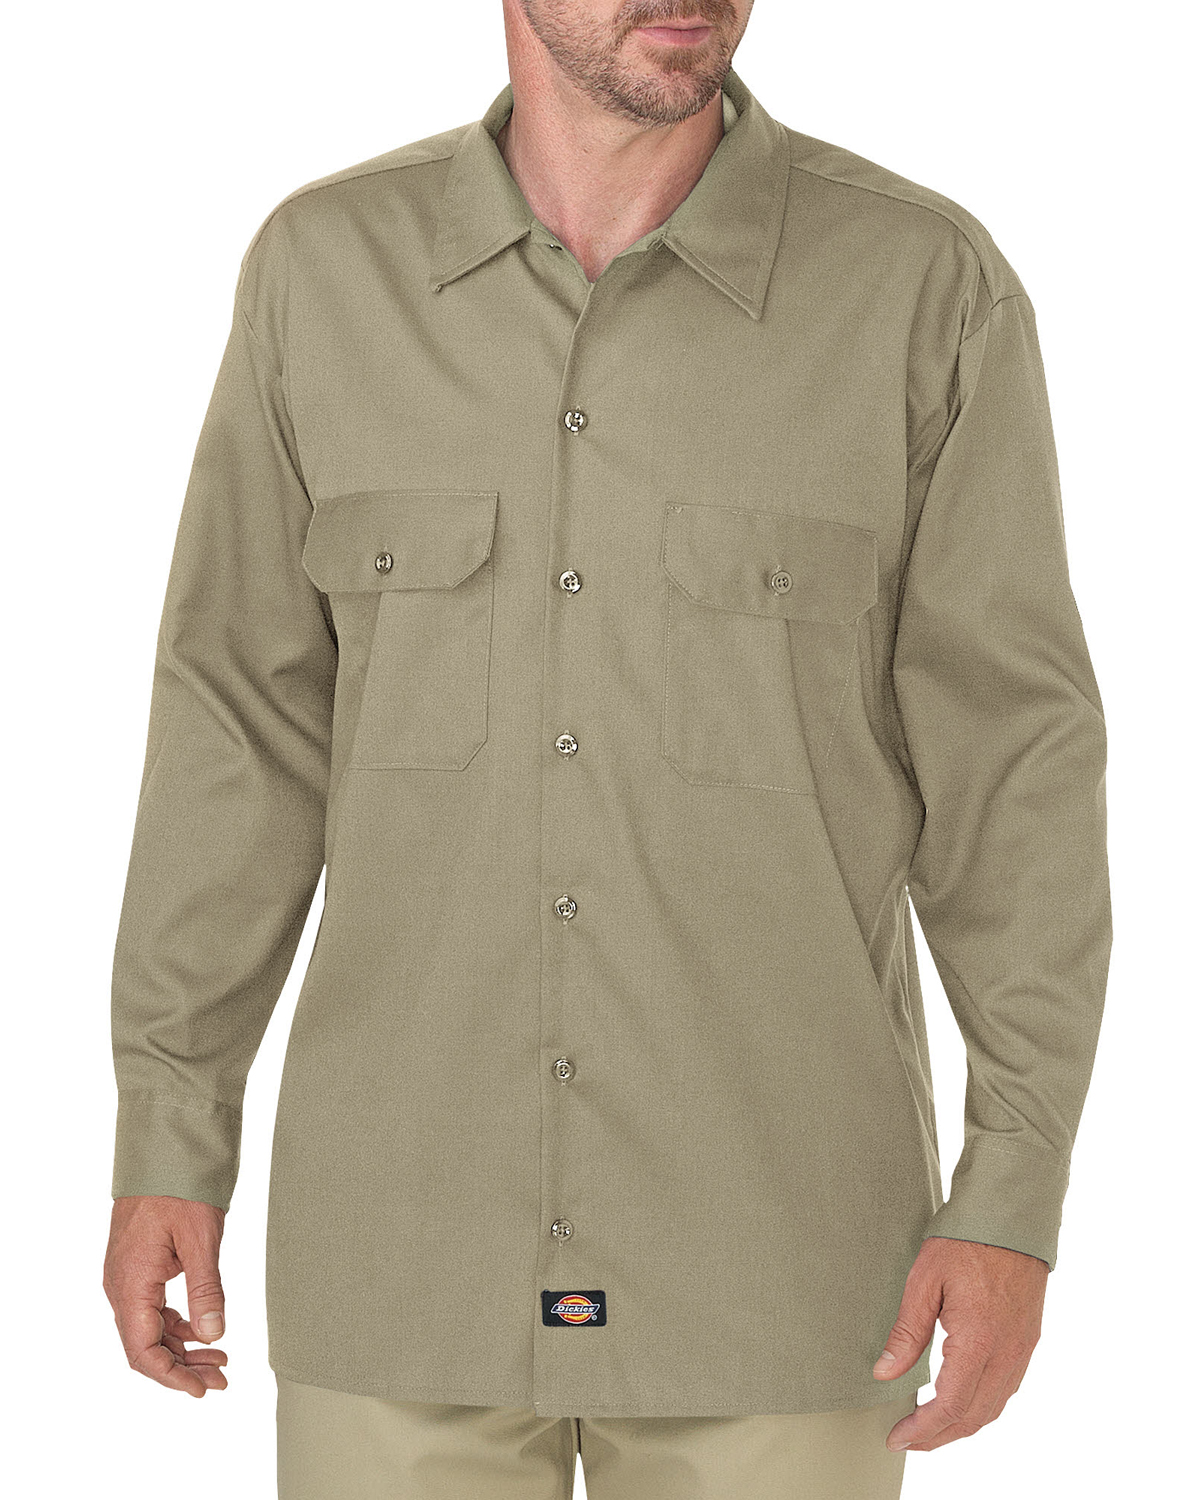 Men's FLEX Relaxed Fit Long-Sleeve Twill Work Shirt